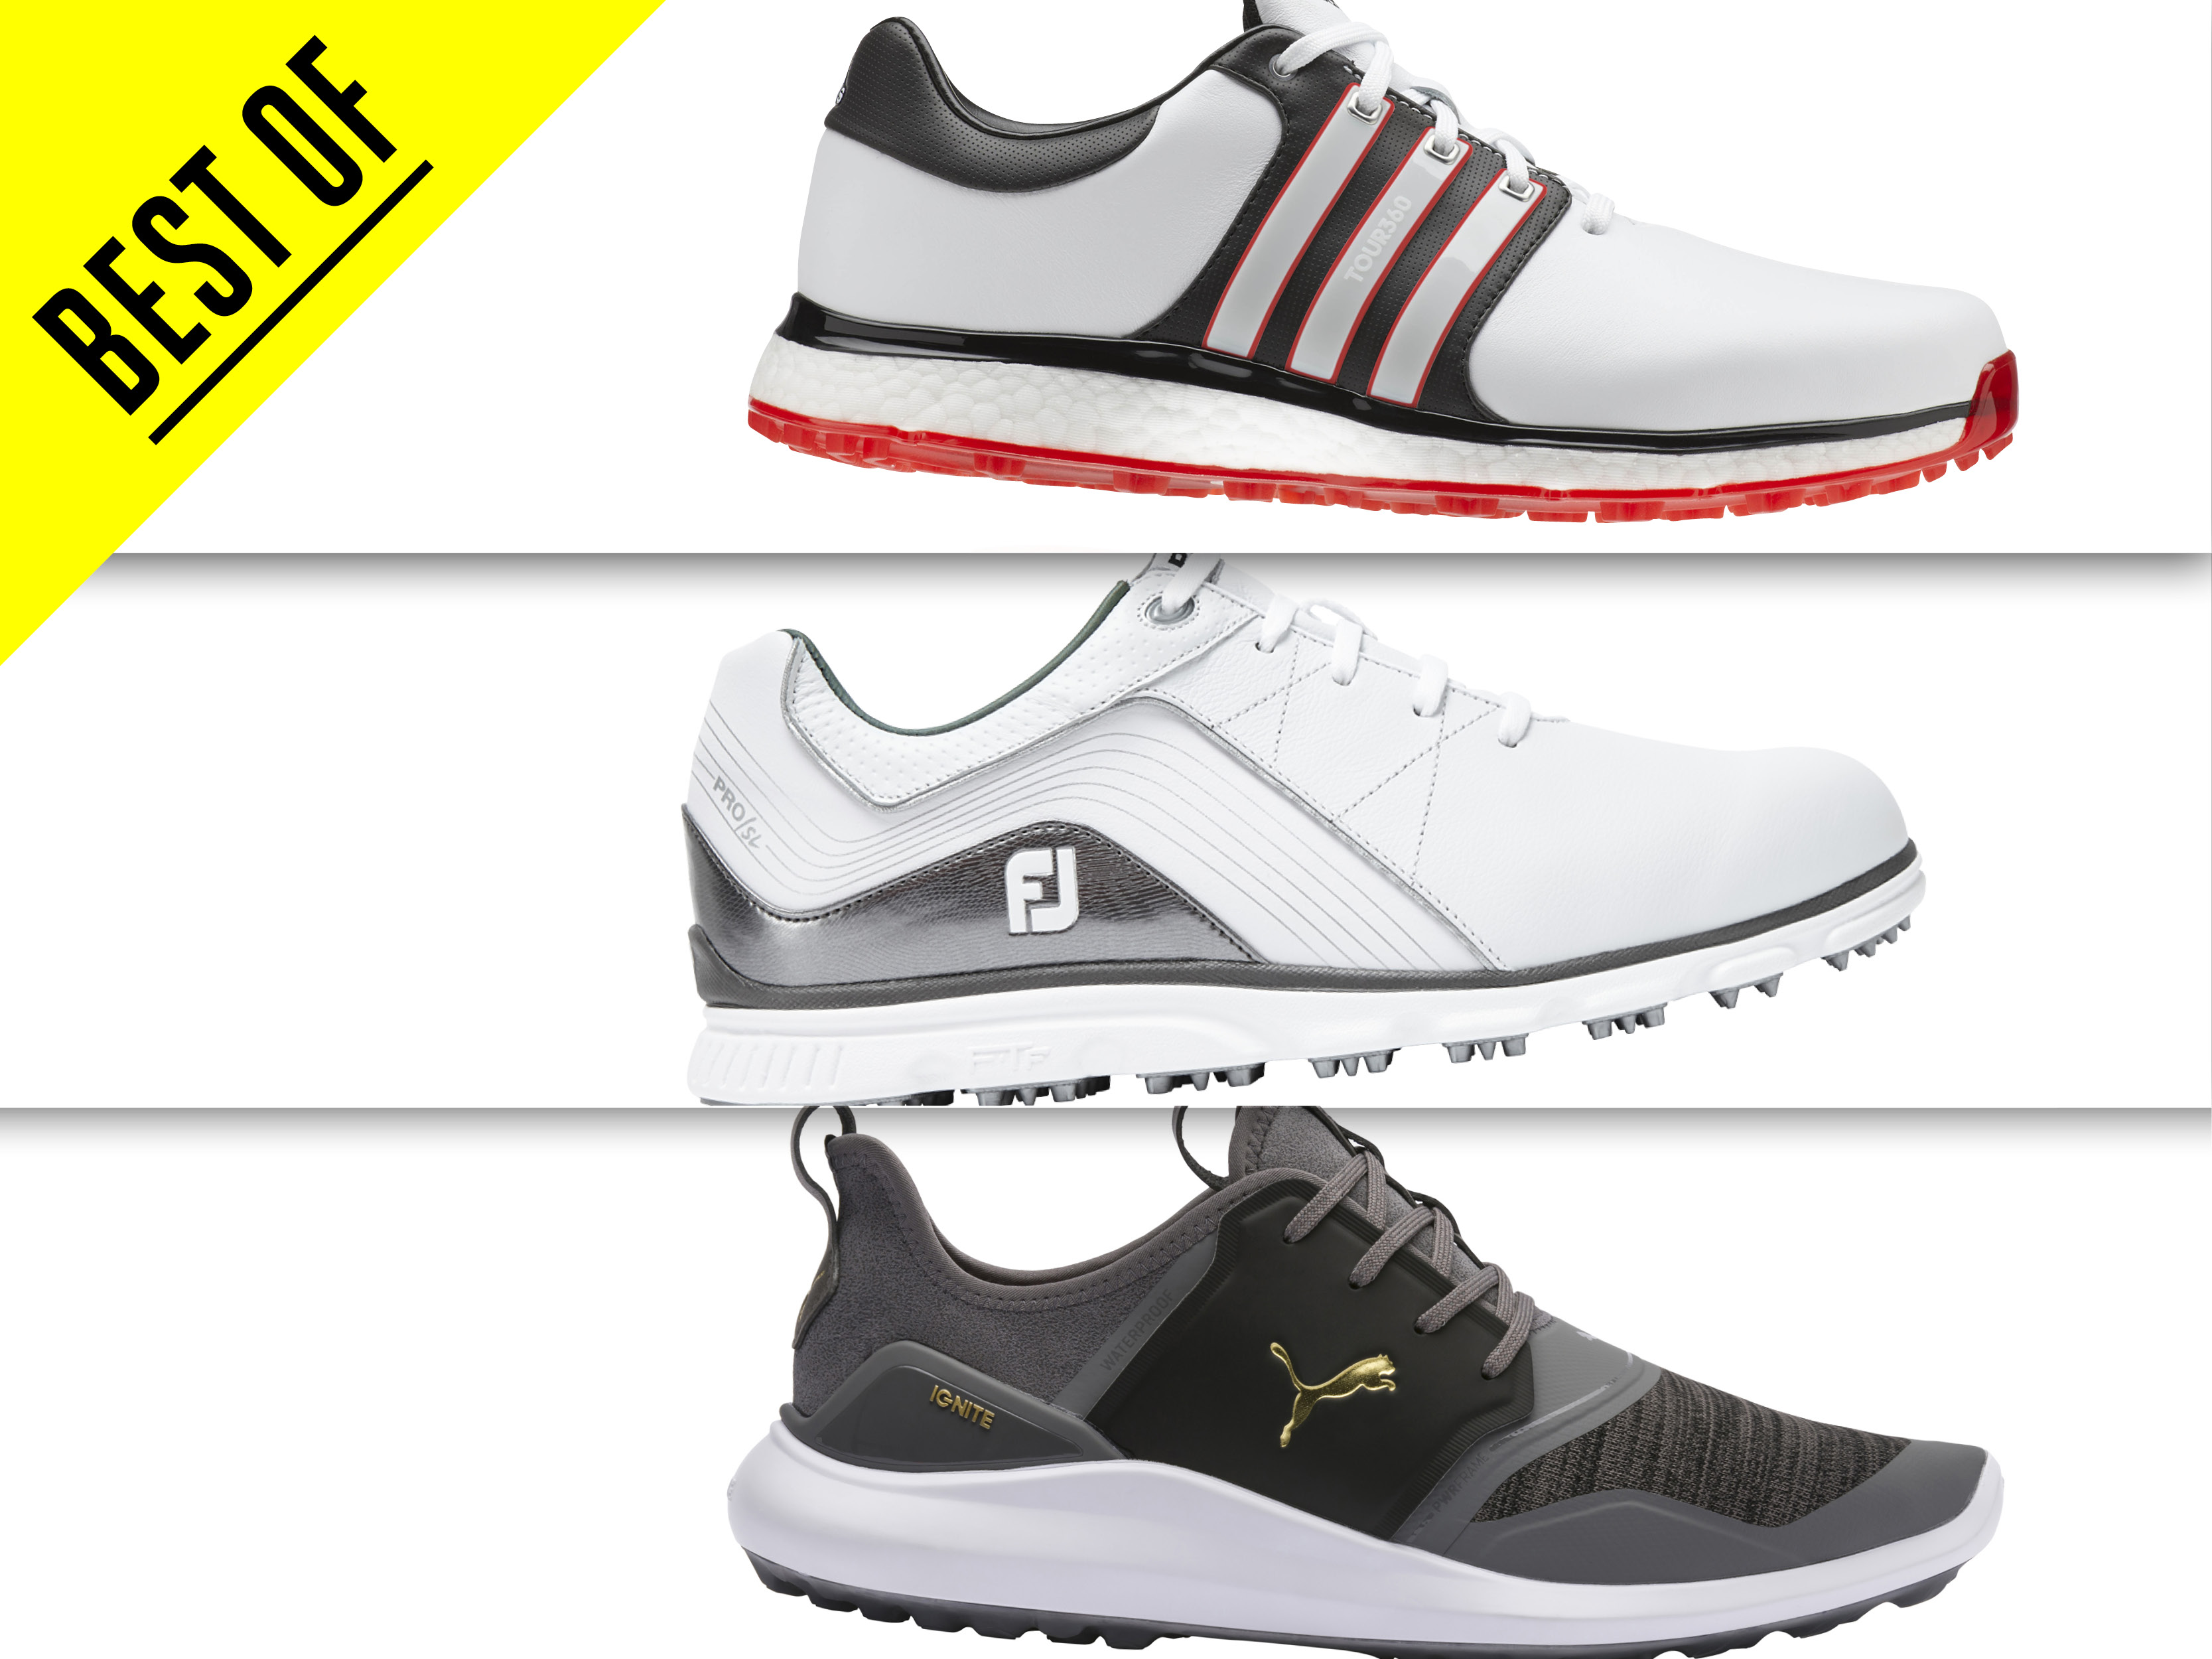 d4c0d6eff95c9 Best Spikeless Golf Shoes 2019 - Comfort and fashion on the fairways